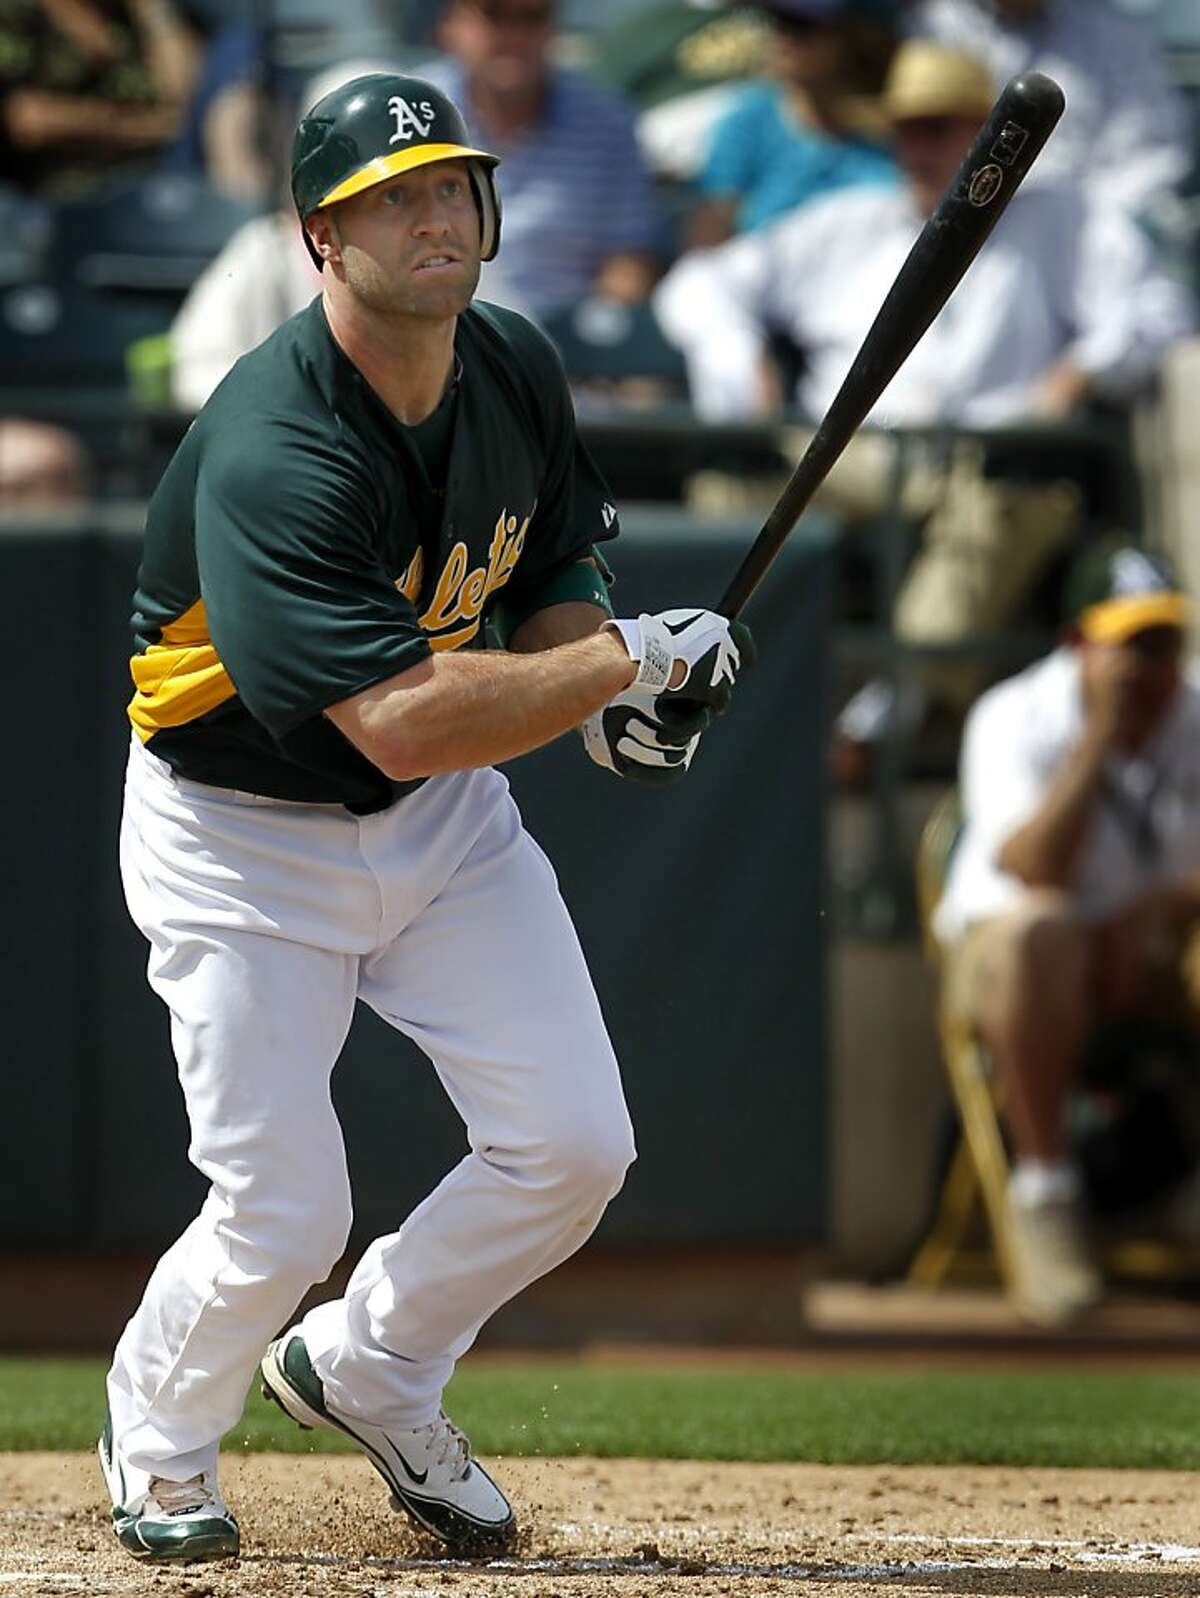 Kevin Kouzmanoff grounds out in the third inning of the A's spring training game against the Chicago White Sox at Phoenix Municipal Stadium on Saturday.